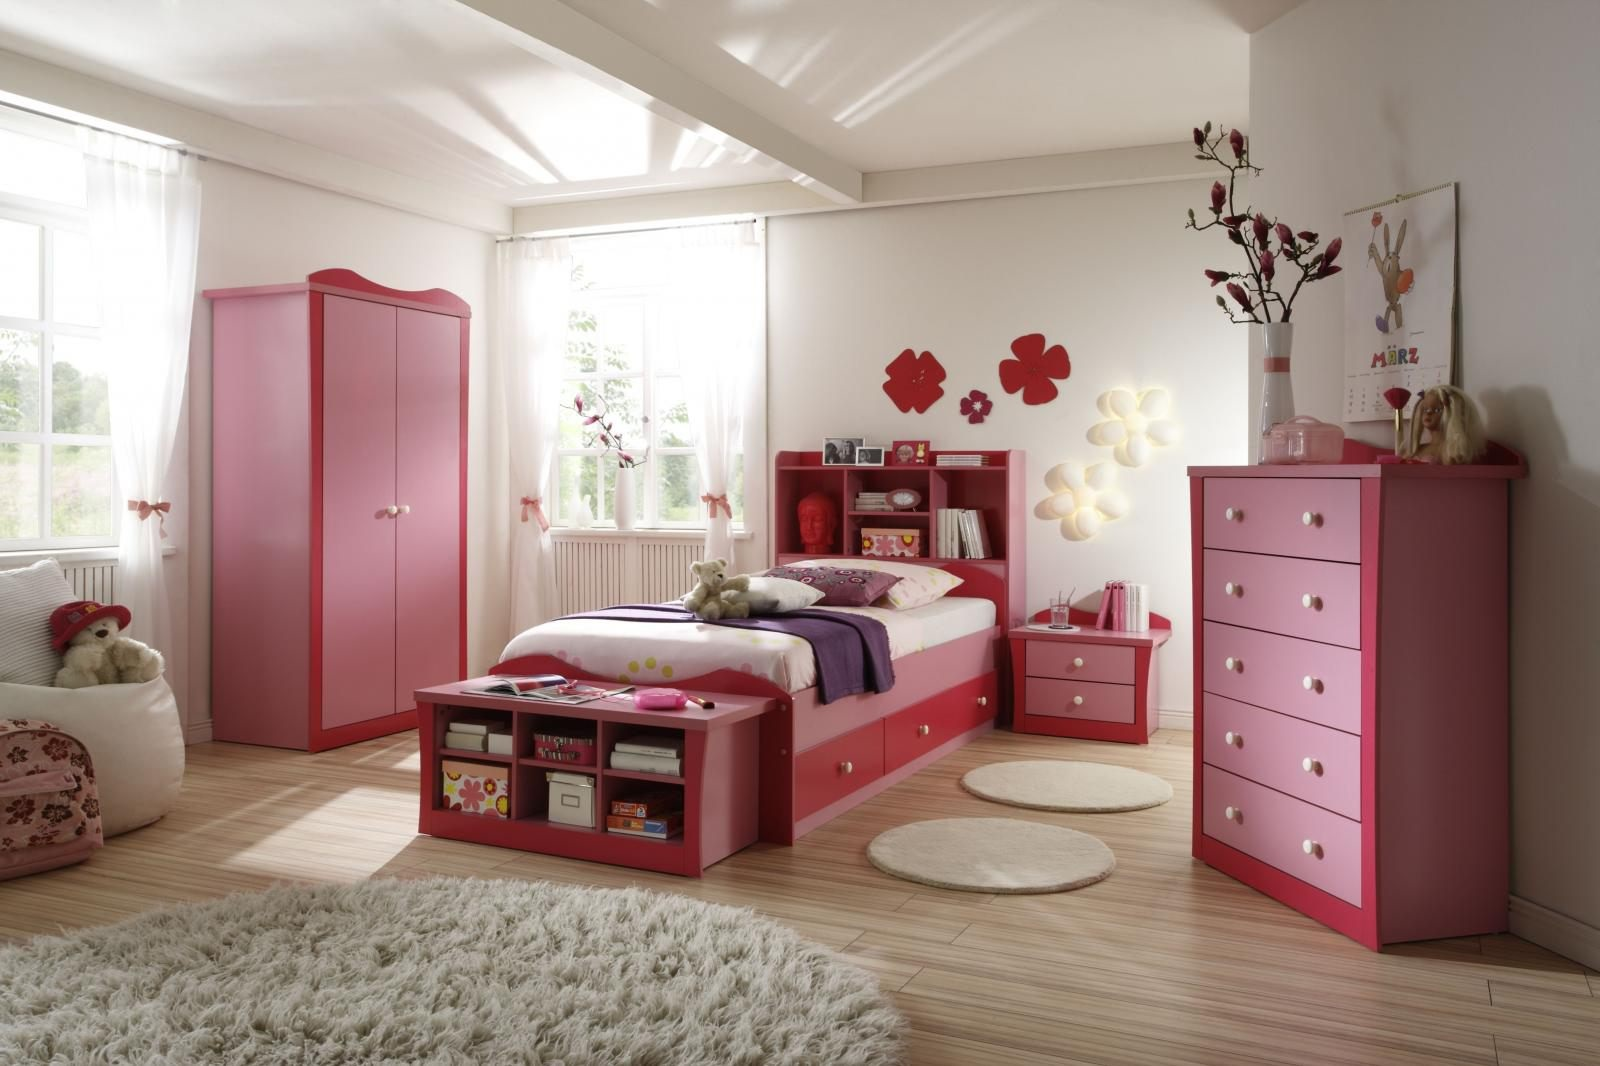 Choose White Flower Shaped Wall Lamps to Decorate Enchanting Girls Room Ideas with Pink Dressers